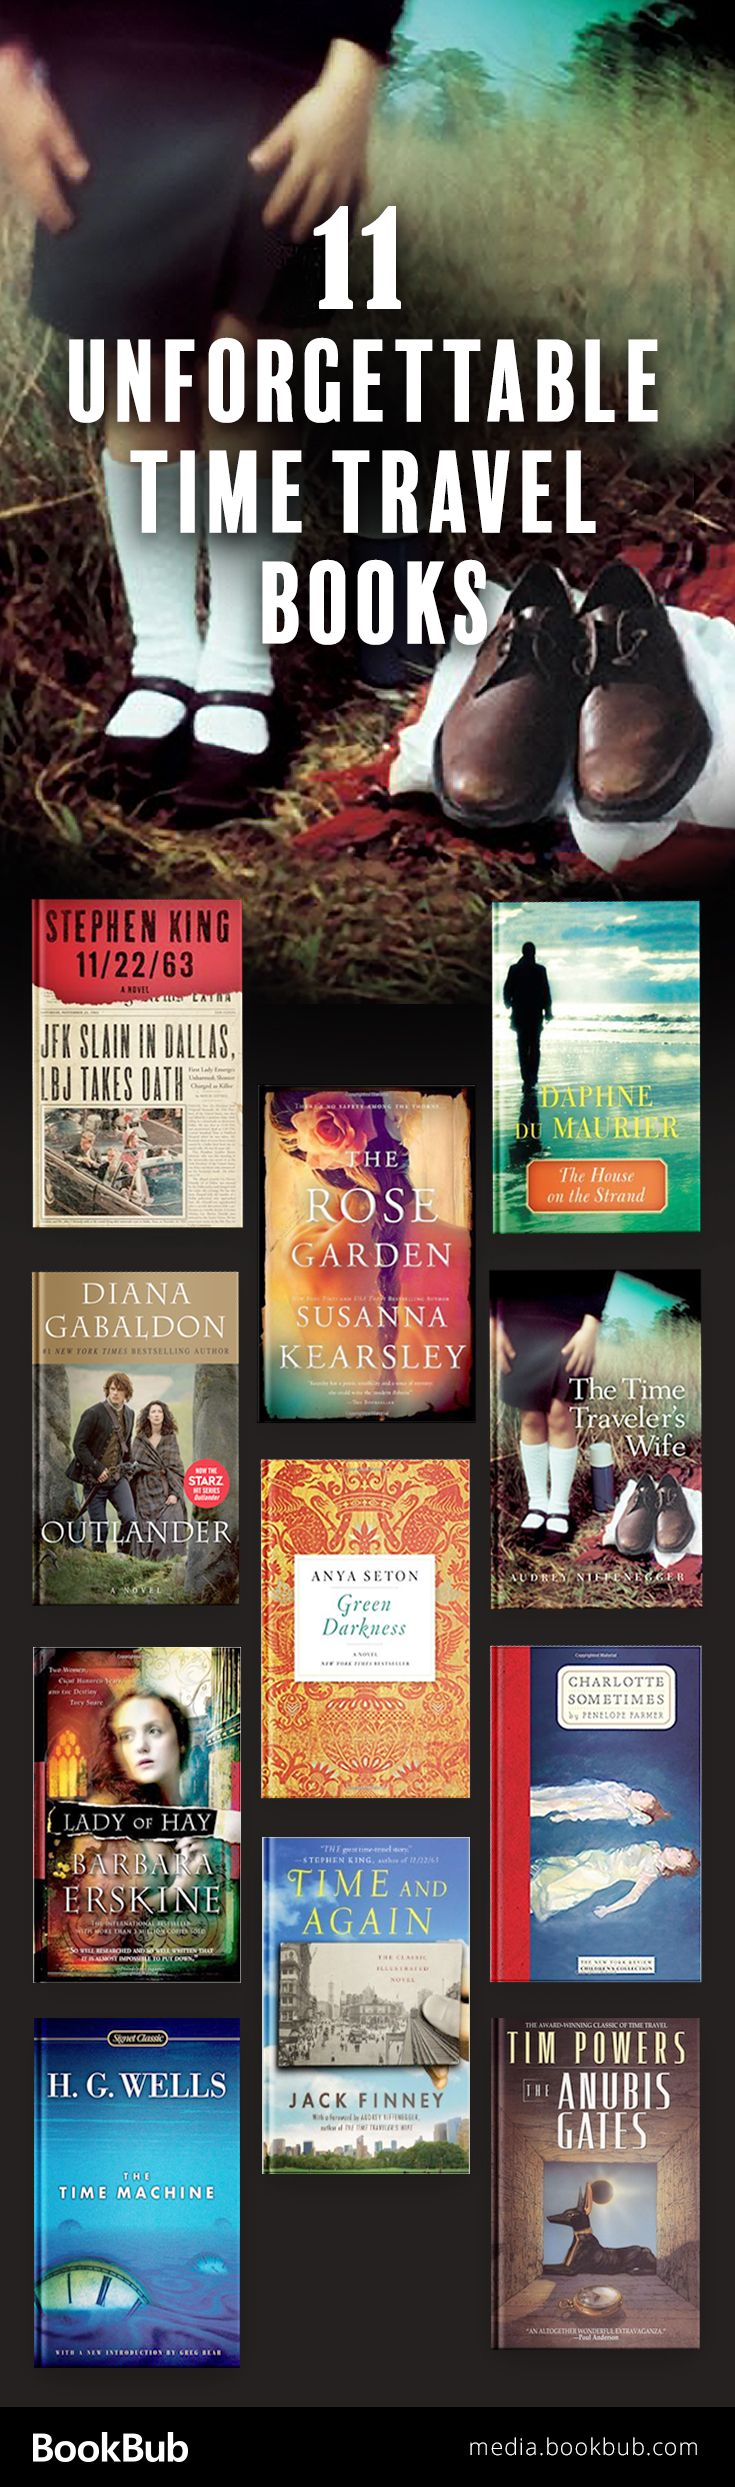 11 great time travel books for fans of Outlander, The Time Traveler's Wife, and more. These books are worth a read, and include some modern classics!